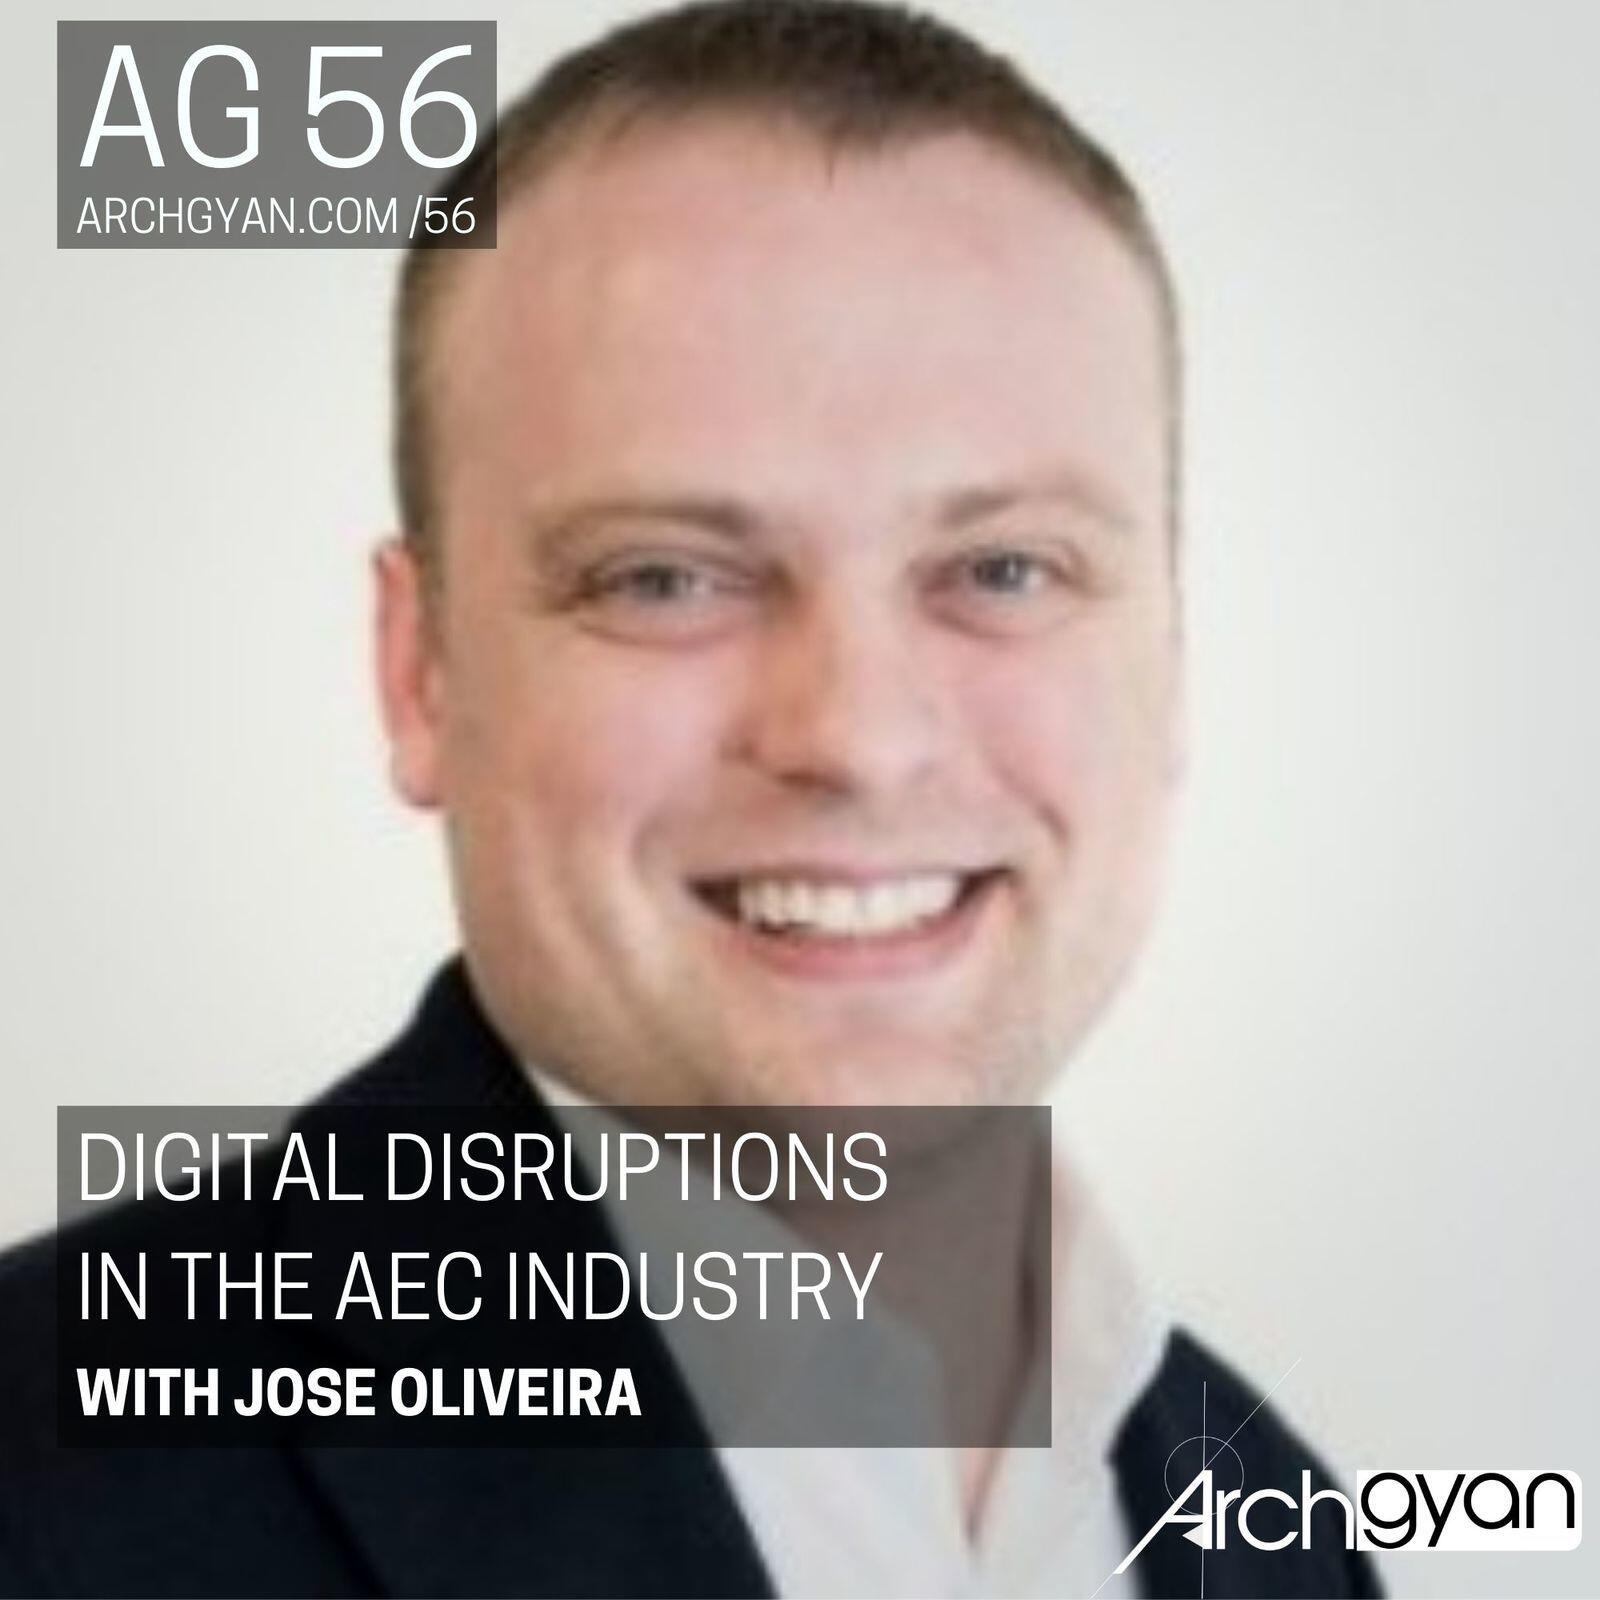 Digital Disruptions in the AEC Industry with Jose Oliveira | AG 56